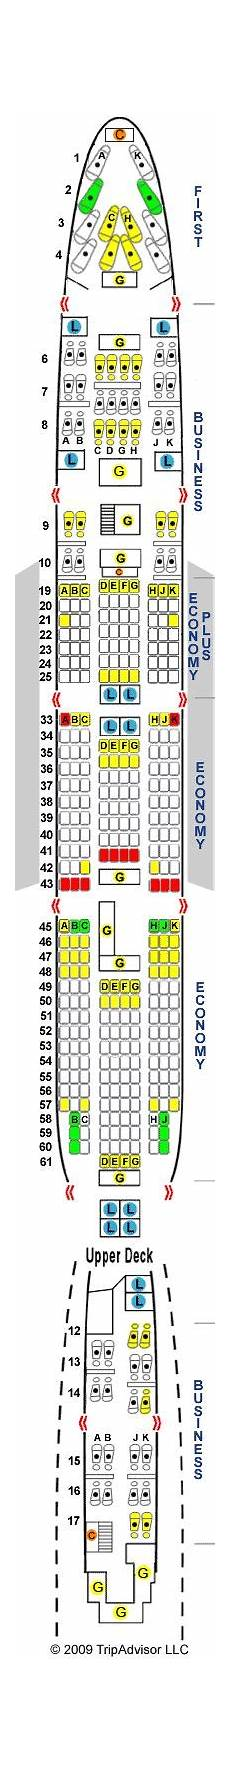 747 400 Seating Chart United Airlines Philippine Airlines Boeing 747 400 427 Seats Aircraft